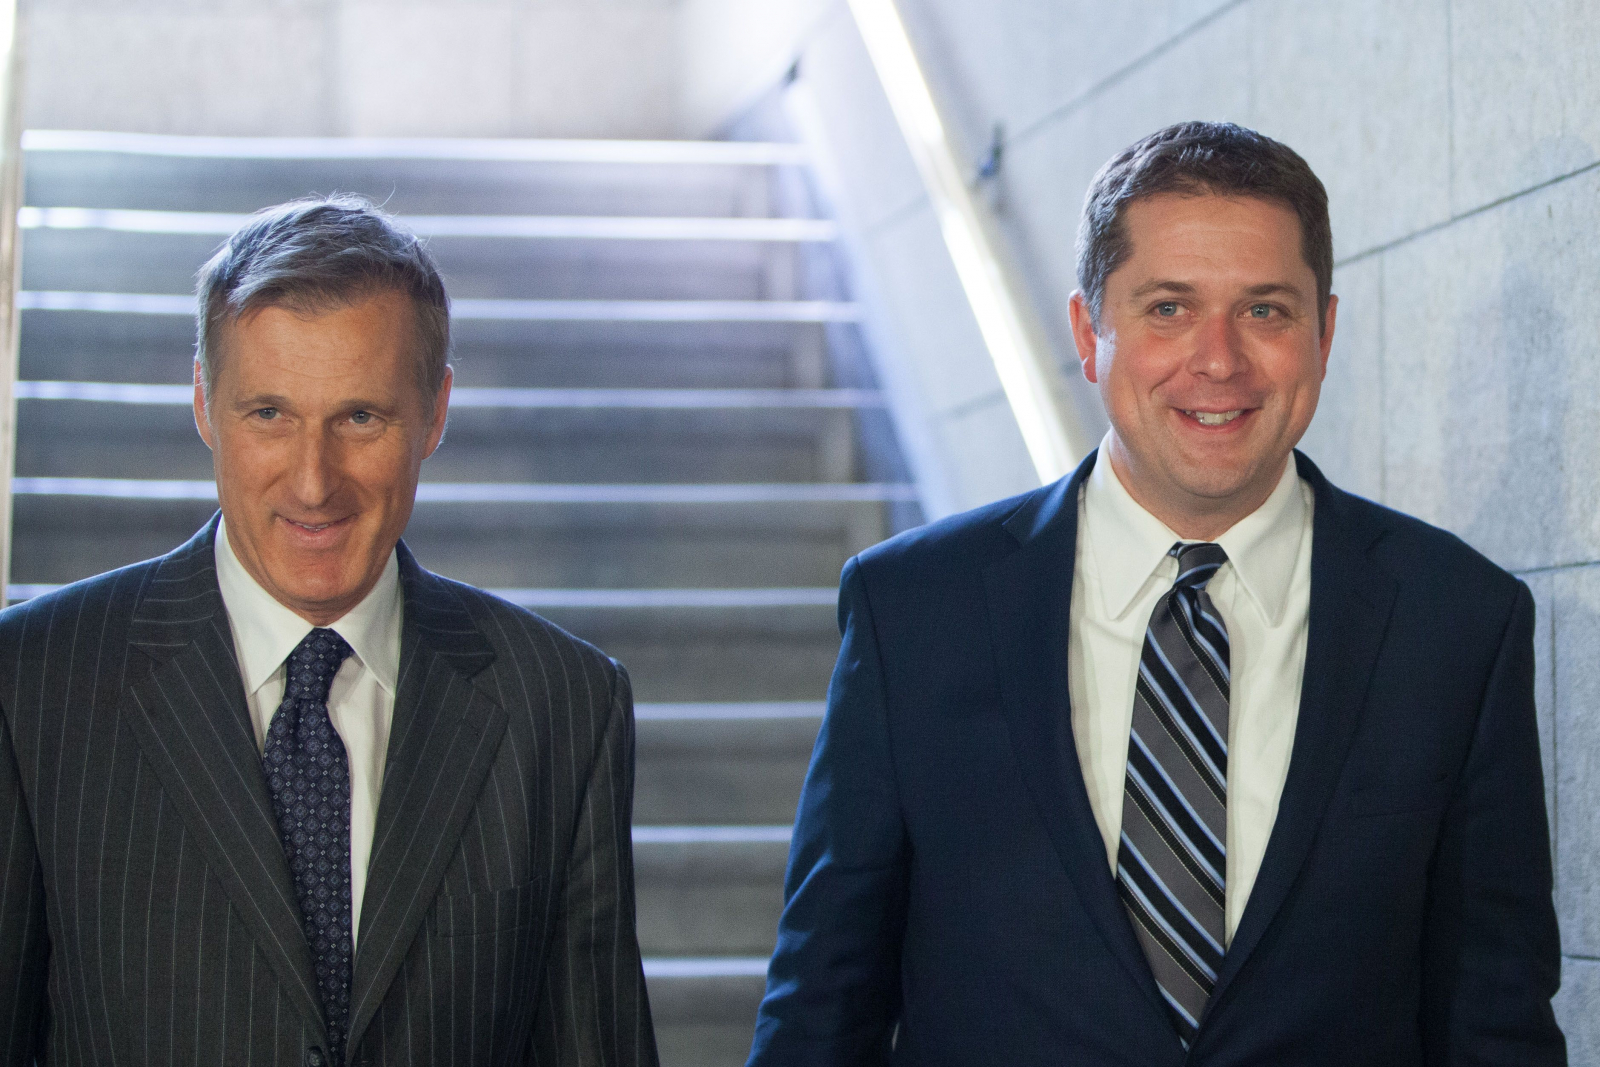 Quebec Mp Maxime Bernier Demands Answers From Tories On Rick Dykstra Affair